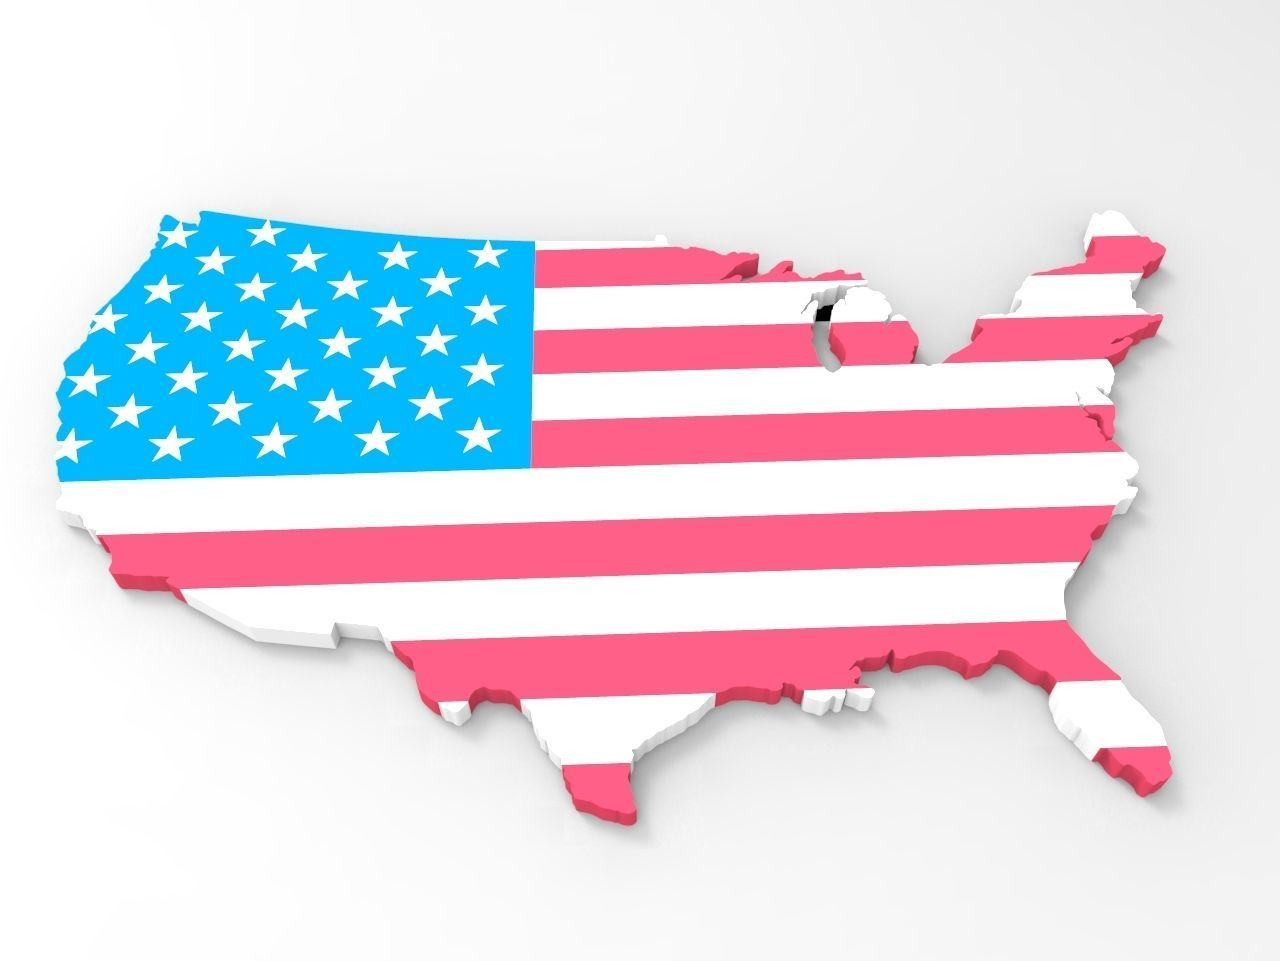 USA Map With American Flag Texture | 3D model Flag Usa Map on usa patriotic drawings, trail of tears cherokee nation map, usa red map, usa goal world cup 2014, usa education map, usa military map, usa usa map, usa stars map, usa statehood map, usa history map, japan map, usa rainbow map, usa house map, usa fish map, usa basketball map, usa american map, moving usa map, usa love map, usa blue map,